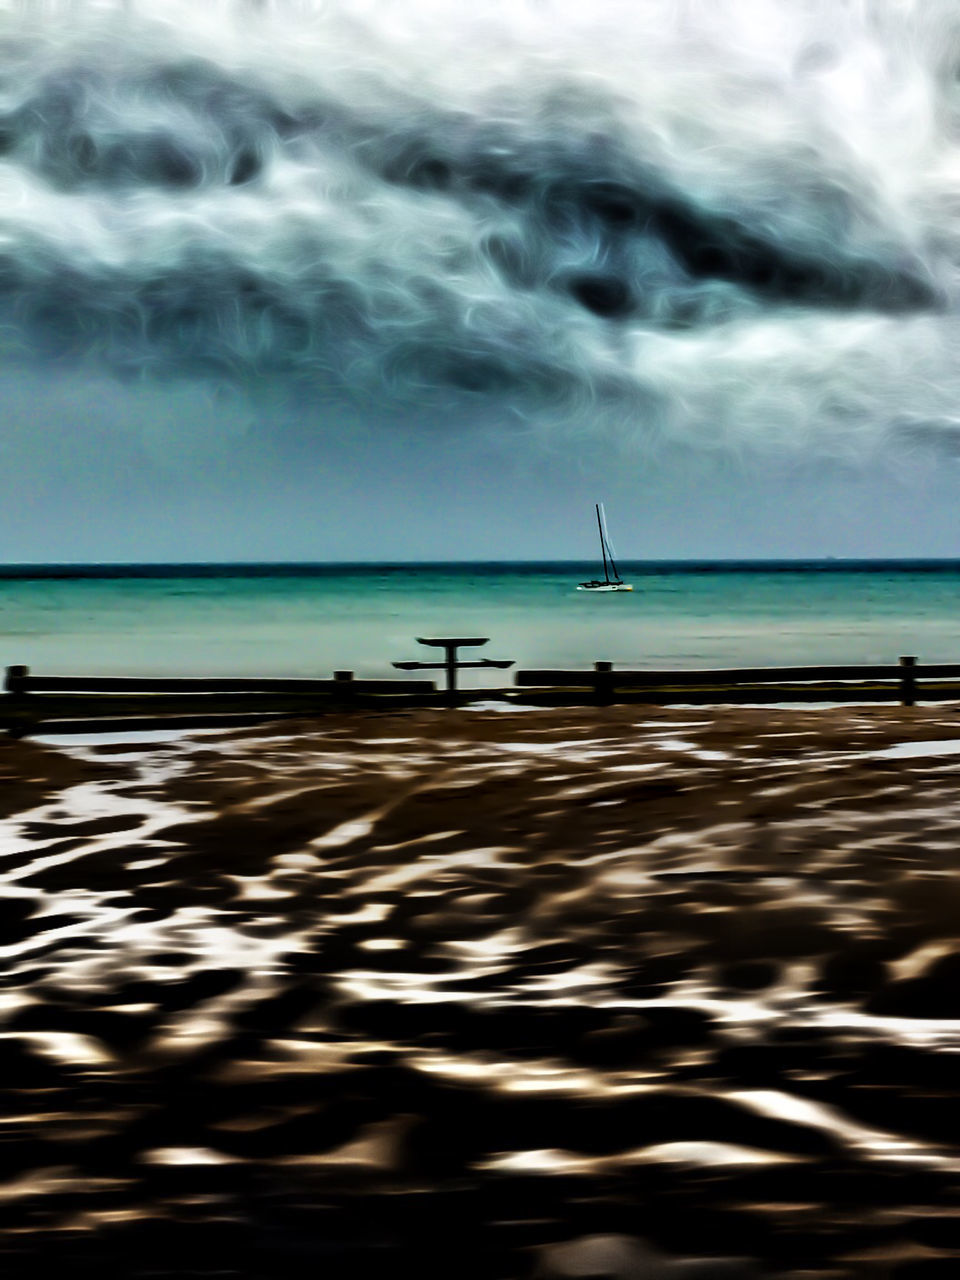 sea, water, sky, horizon over water, nature, cloud - sky, beauty in nature, scenics, tranquility, nautical vessel, outdoors, tranquil scene, beach, rippled, day, no people, waterfront, transportation